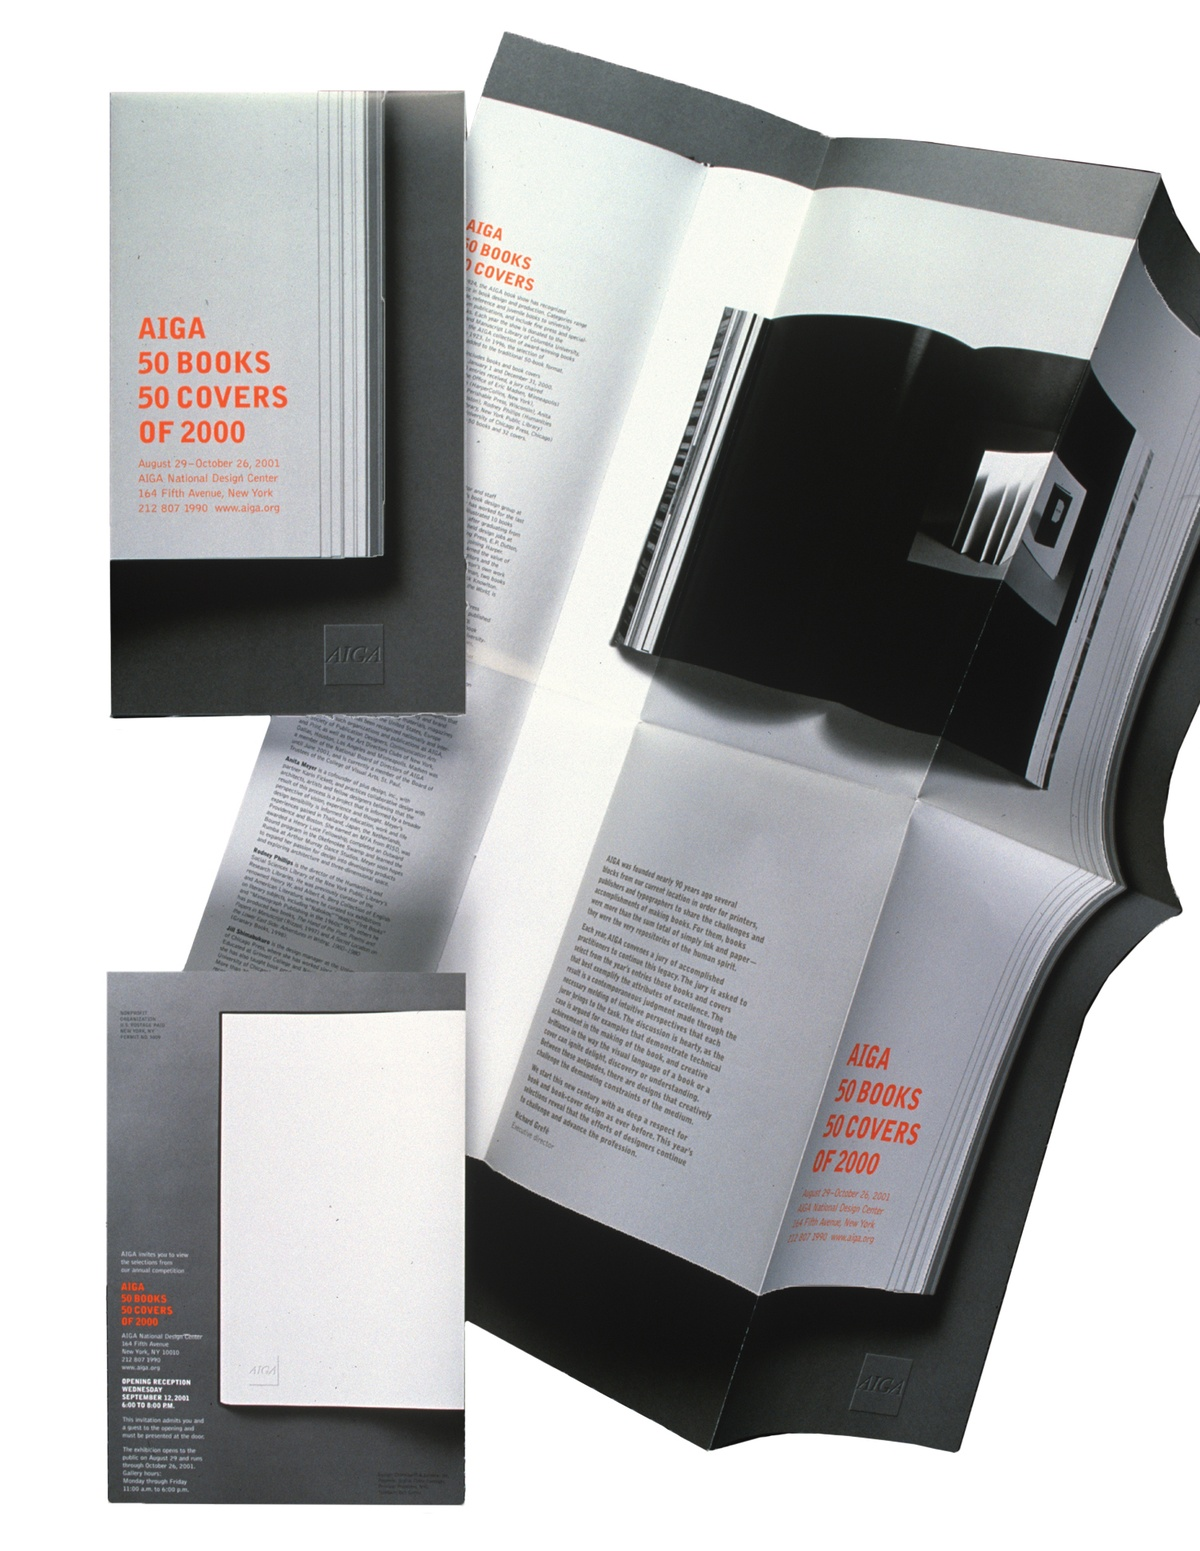 Project image 3 for Print Materials, American Institute of Graphic Arts